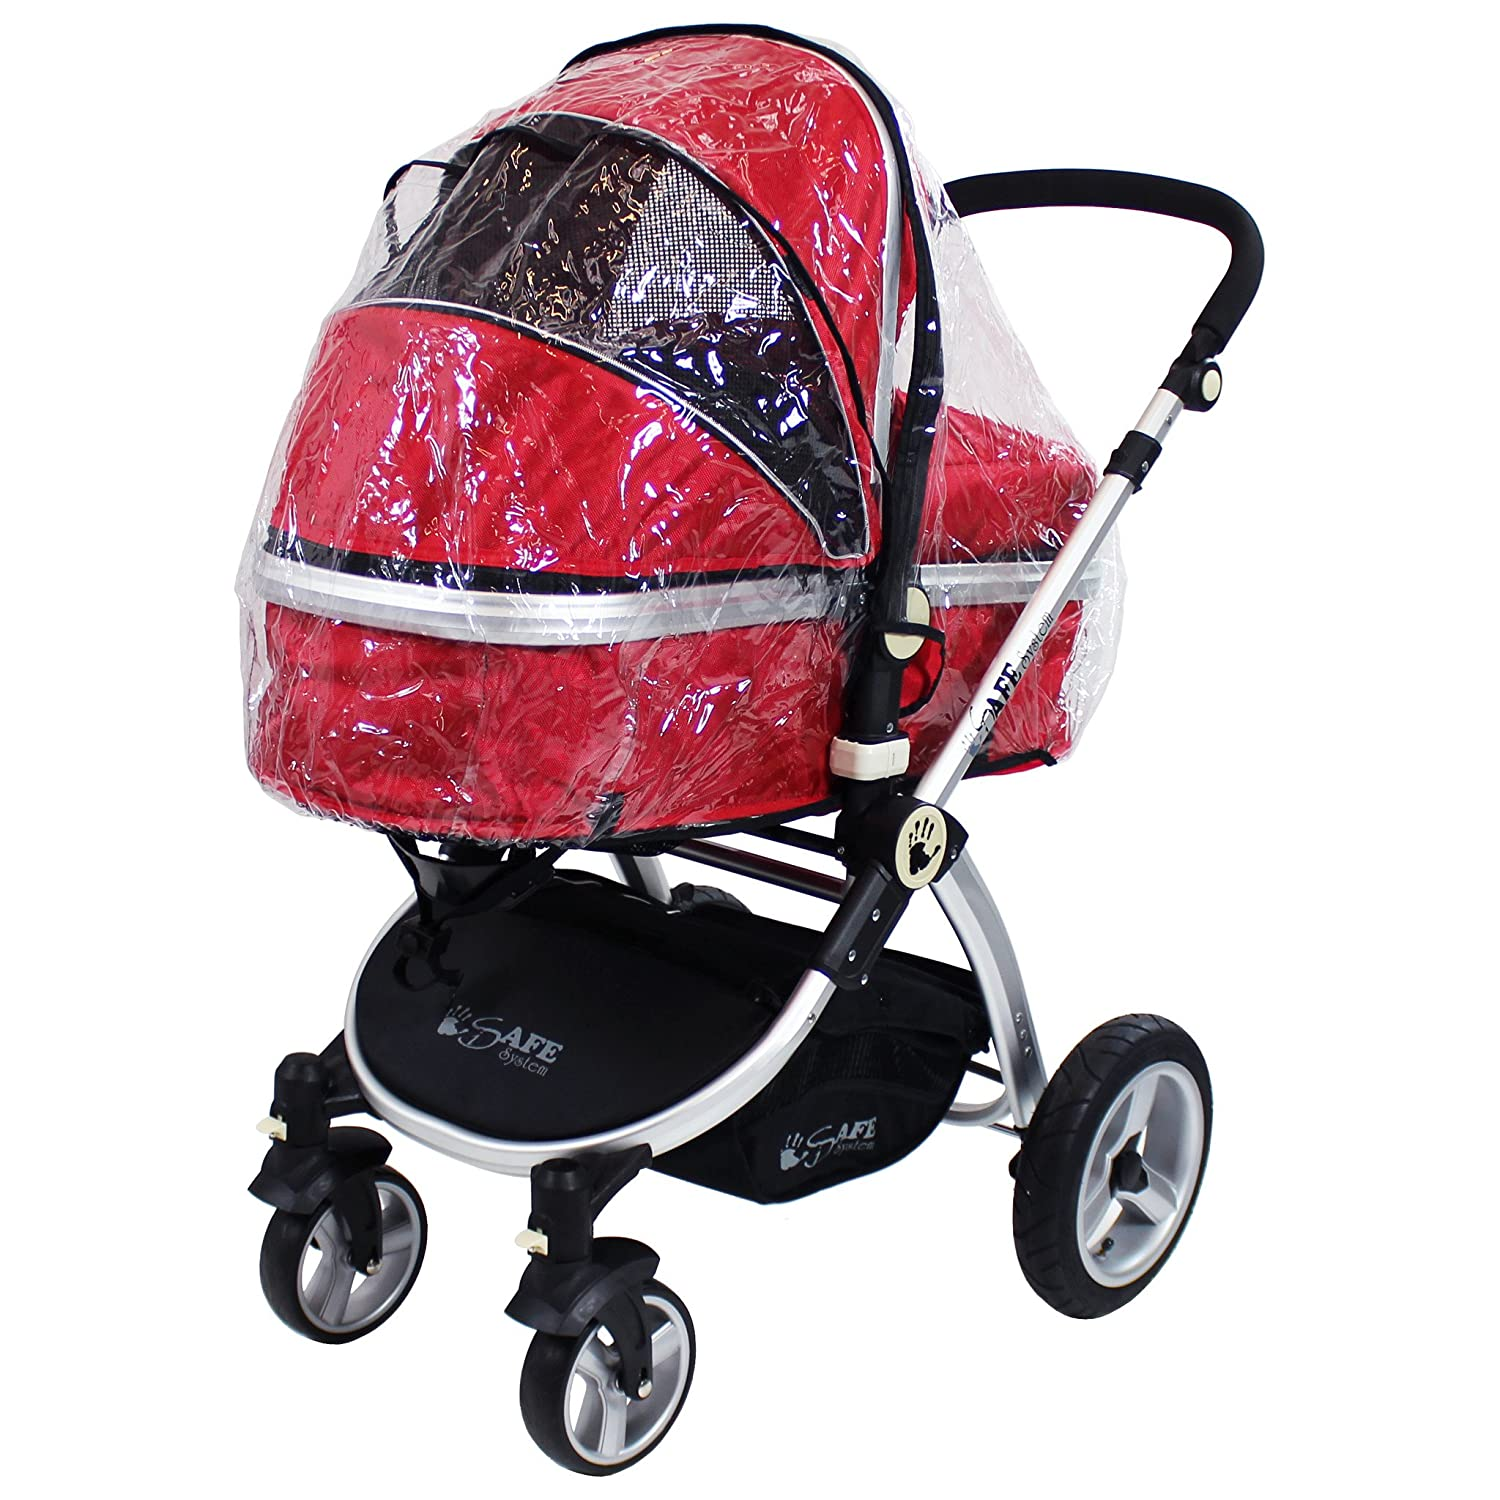 Universal Raincover For Silver Cross Wayfarer Carrycot Ventilated